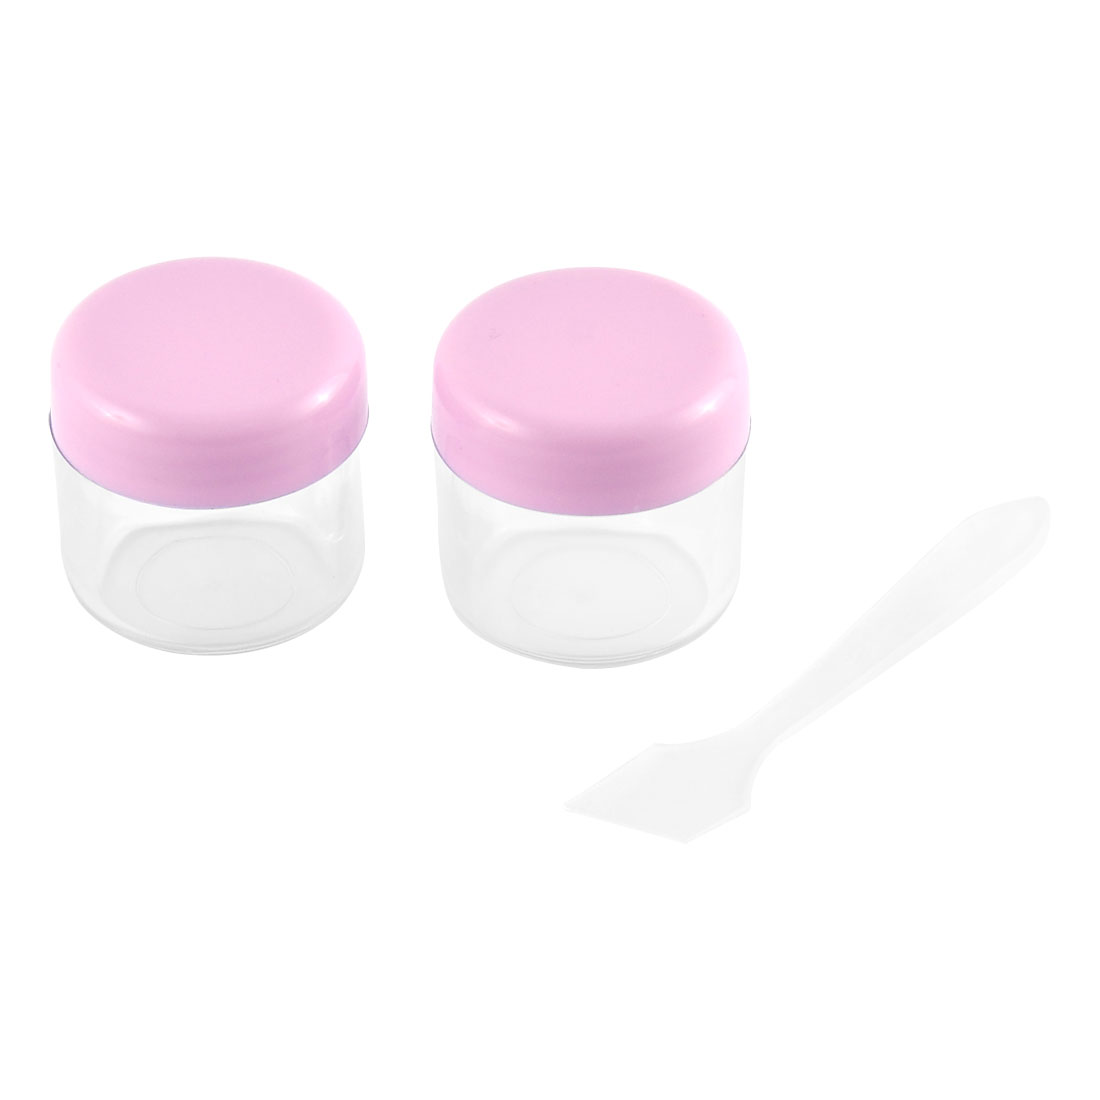 Lady Plastic Multifunctional Makeup Face Skin Cream Empty Cosmetic Jar 20ml 2pcs